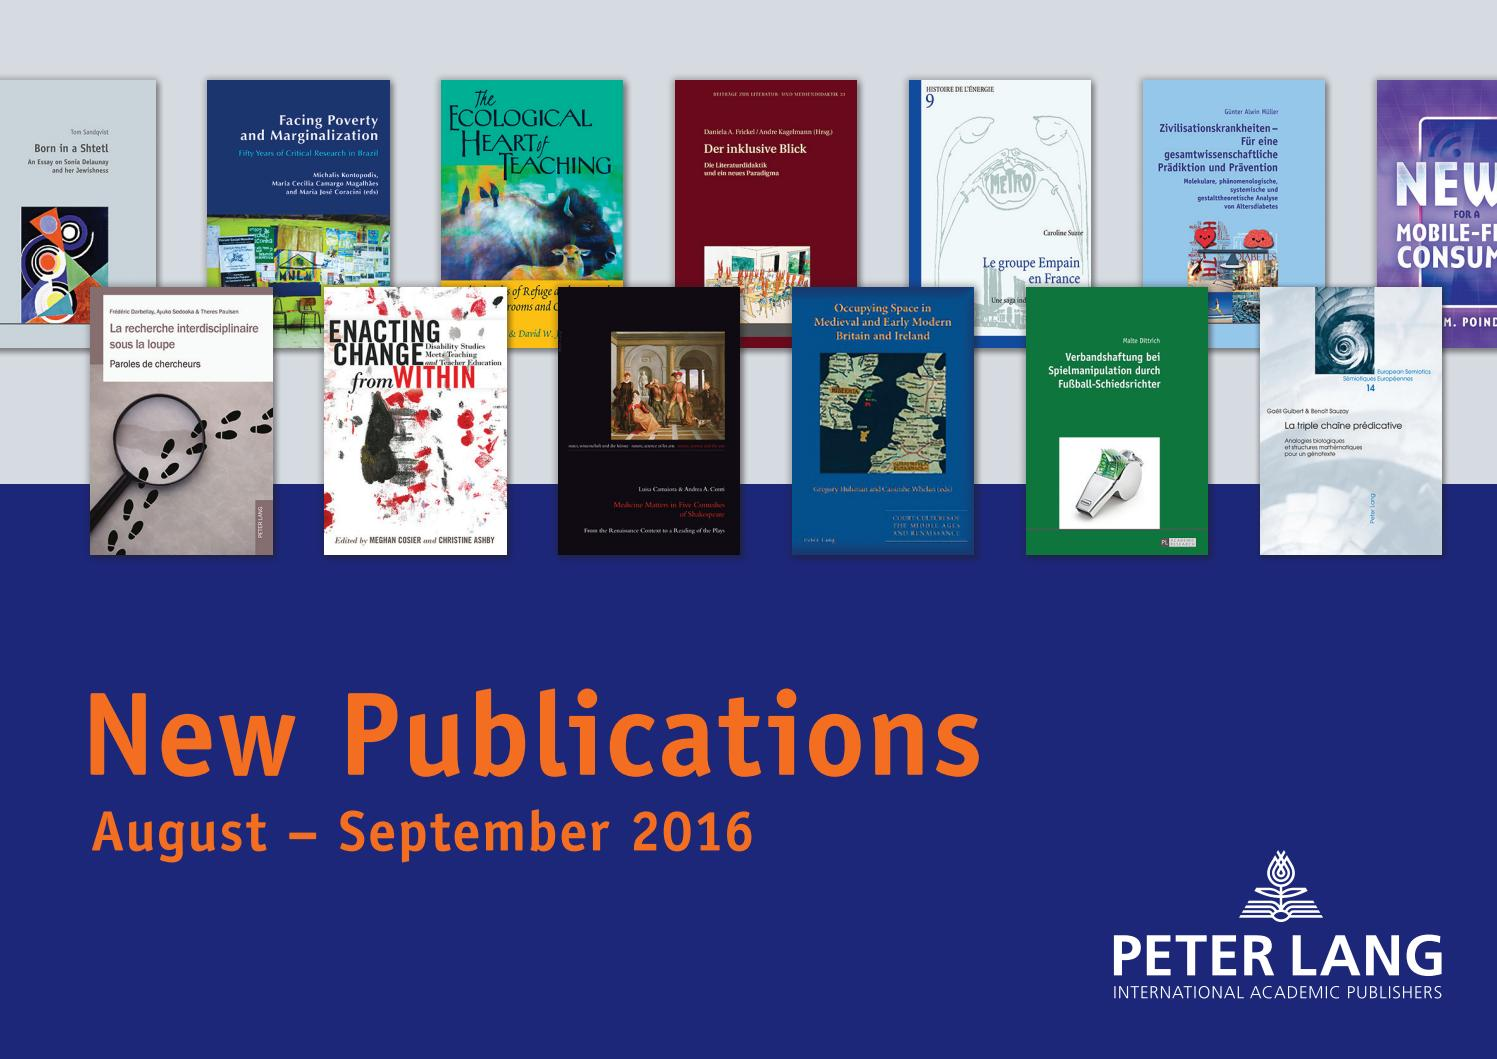 New Publications Catalogue August September 2016 By Peter